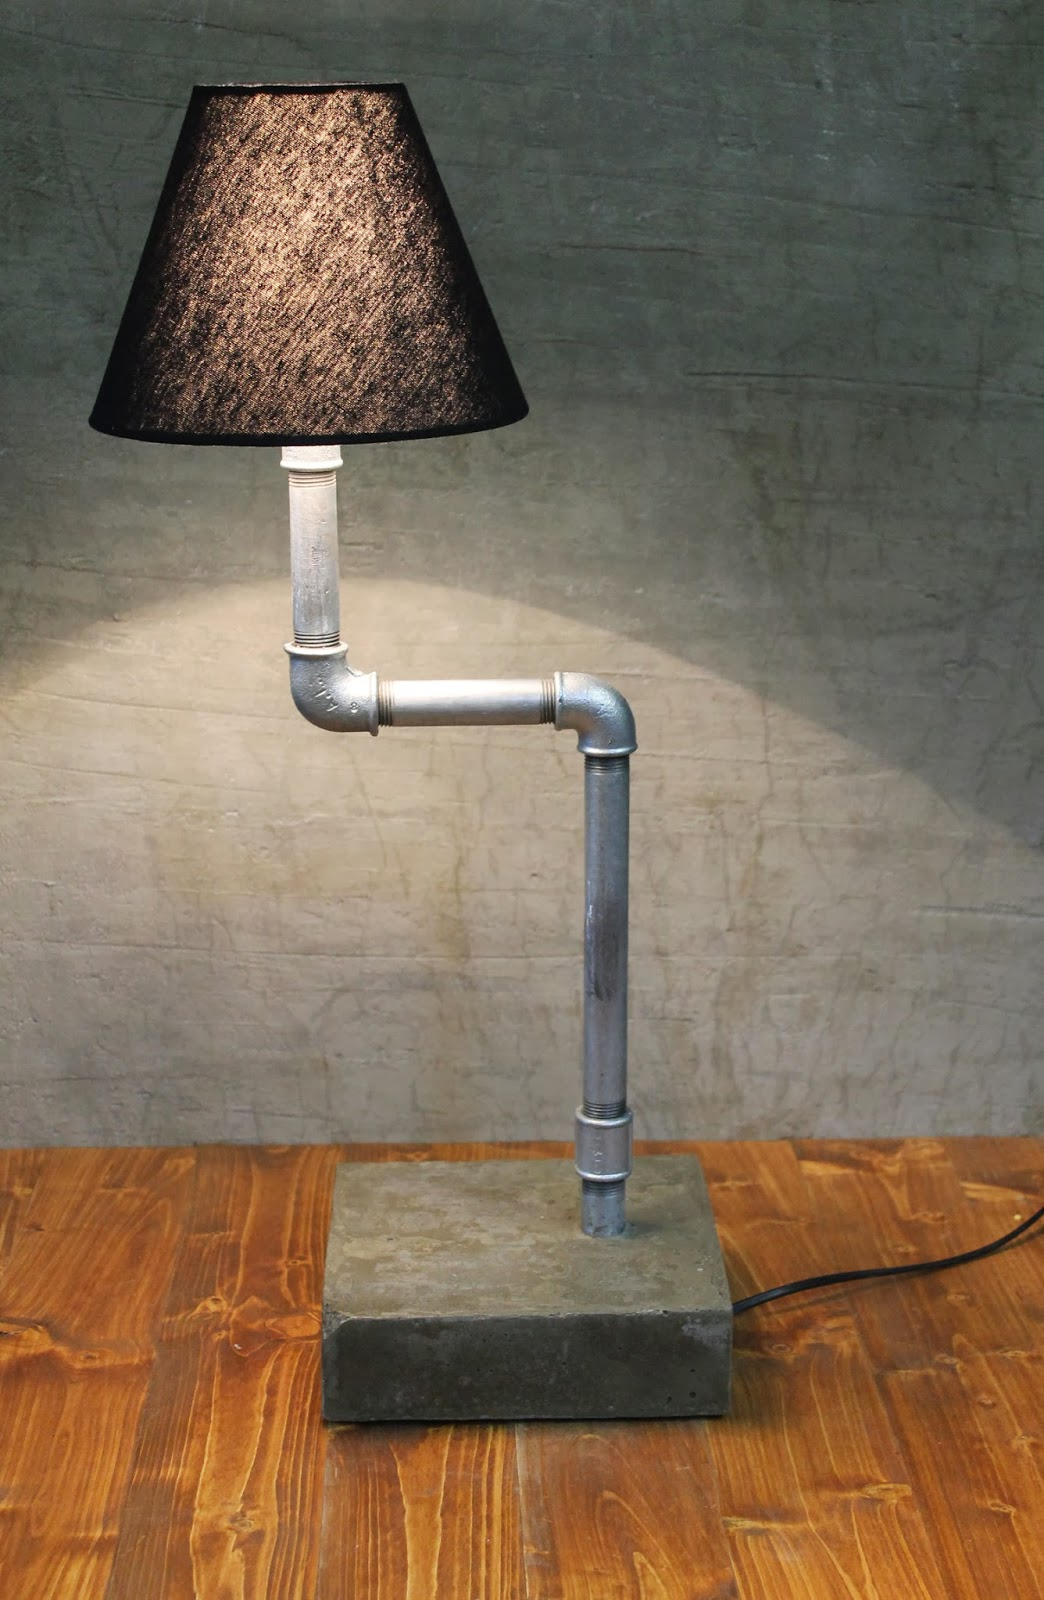 industrial style gusseisen rohr lampe auf betonsockel snakytube. Black Bedroom Furniture Sets. Home Design Ideas